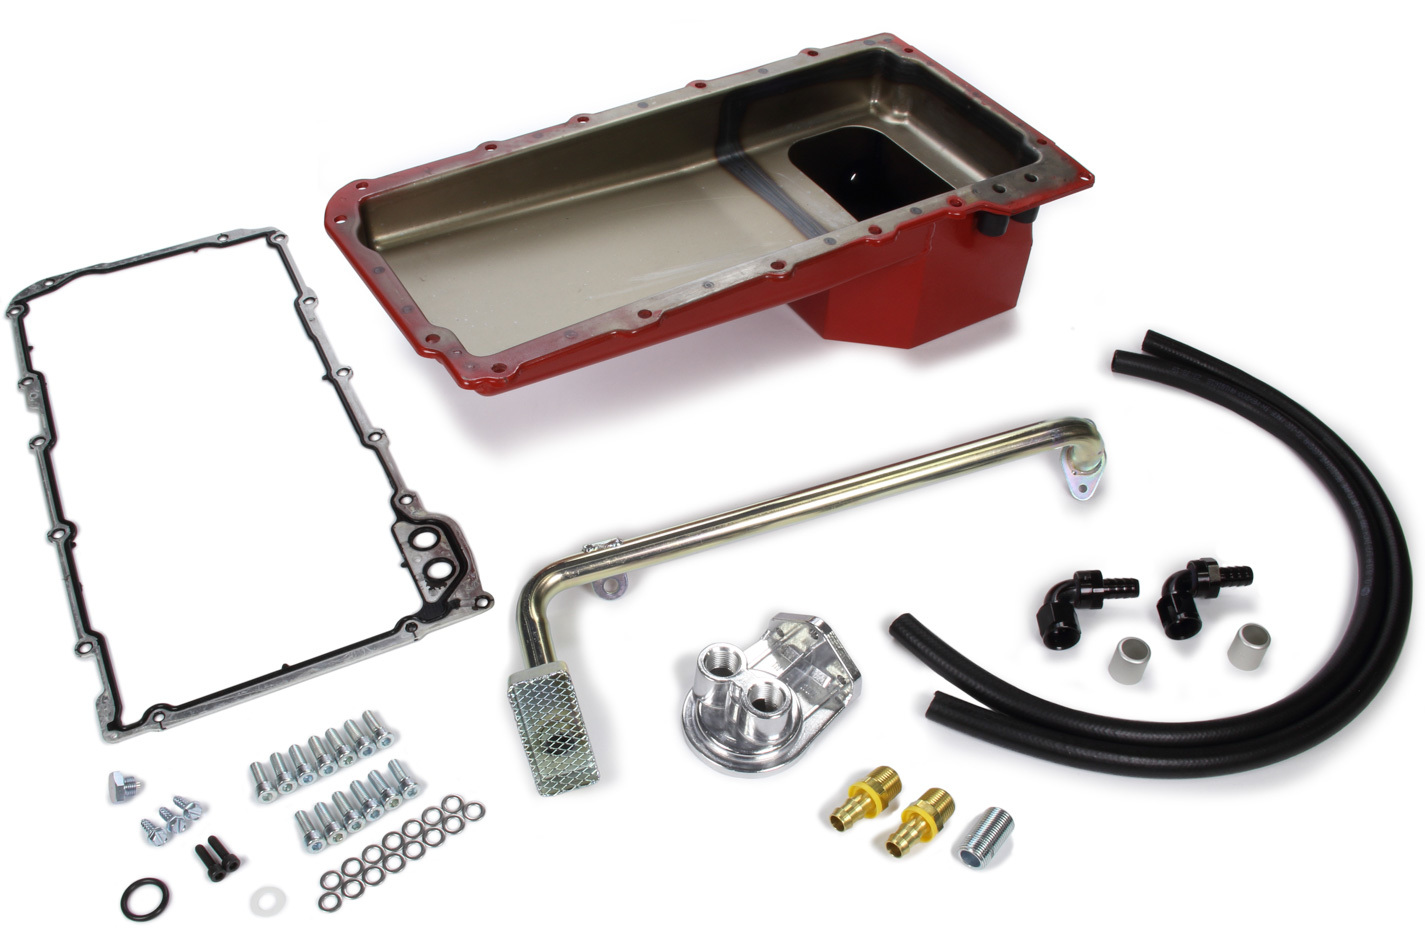 Trans Dapt 0175 Engine Oil Pan Kit, Fabricated, Rear Sump, 5 qt, 6 in Deep, Single Filter, Vertical Port, Gasket / Hardware / Oil Filter Relocation System / Pickup, Steel, Red Painted, GM LS-Series, GM F-Body 1967-69, Kit